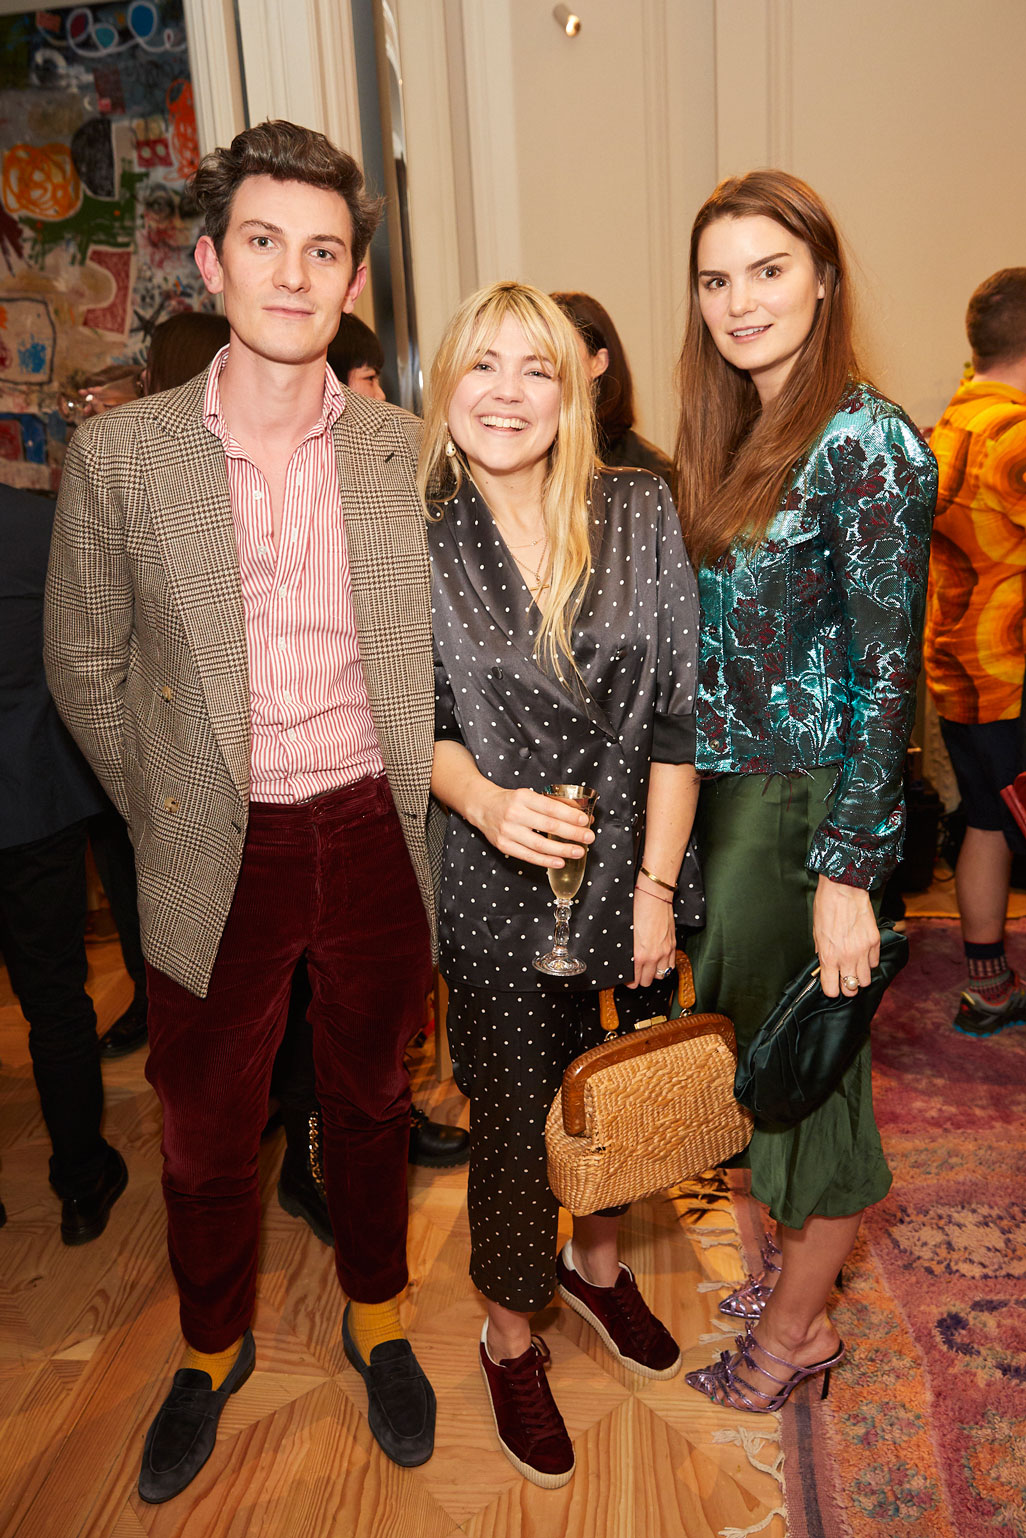 Duncan Campbell, Matilda Goad and Charlotte Rey at at the Interiors launch at MATCHESFASHION.COM in London